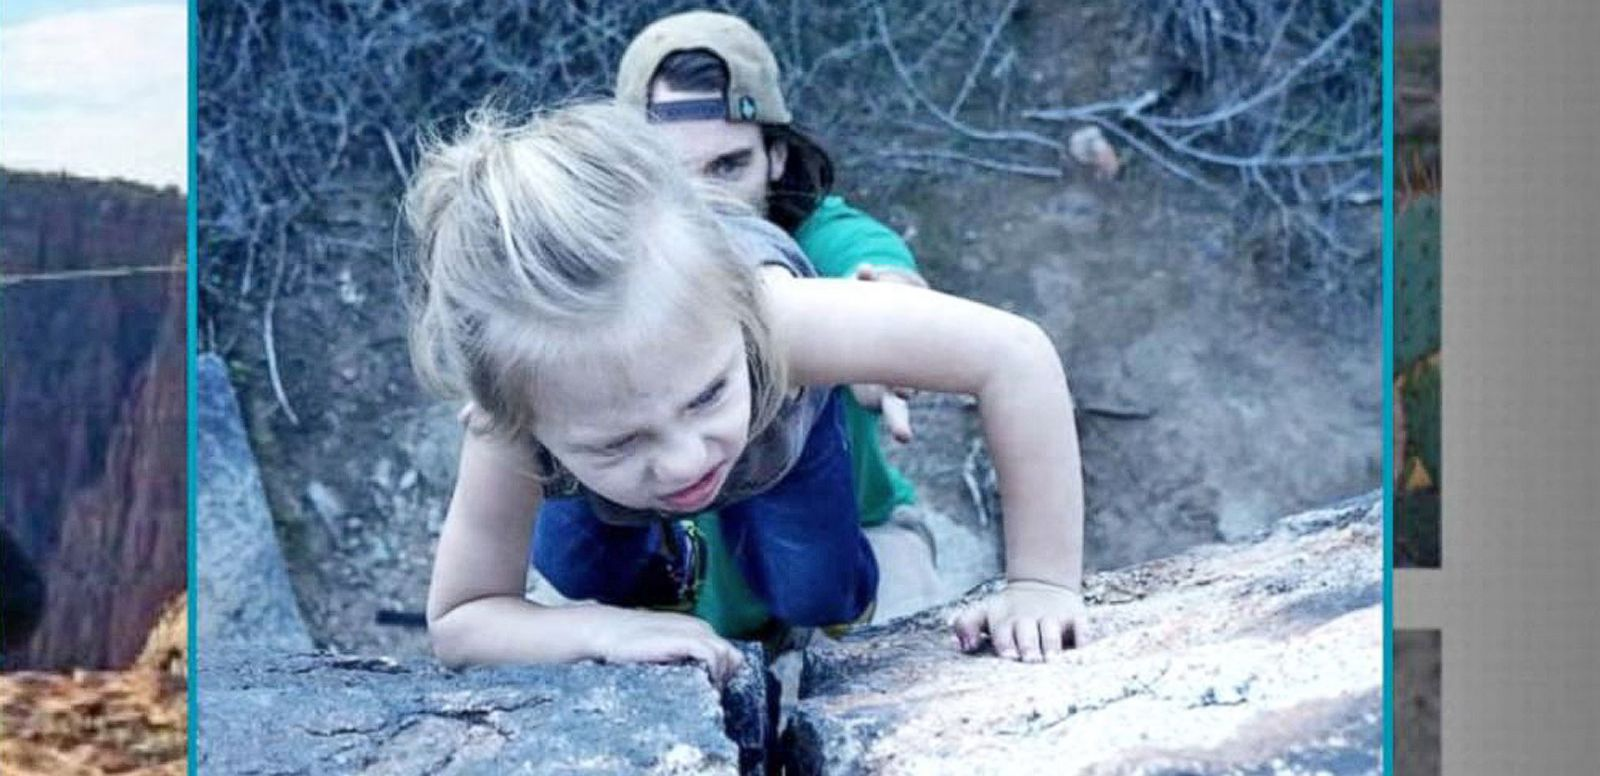 VIDEO: Amazing Toddler Showcases Rock Climbing Skills